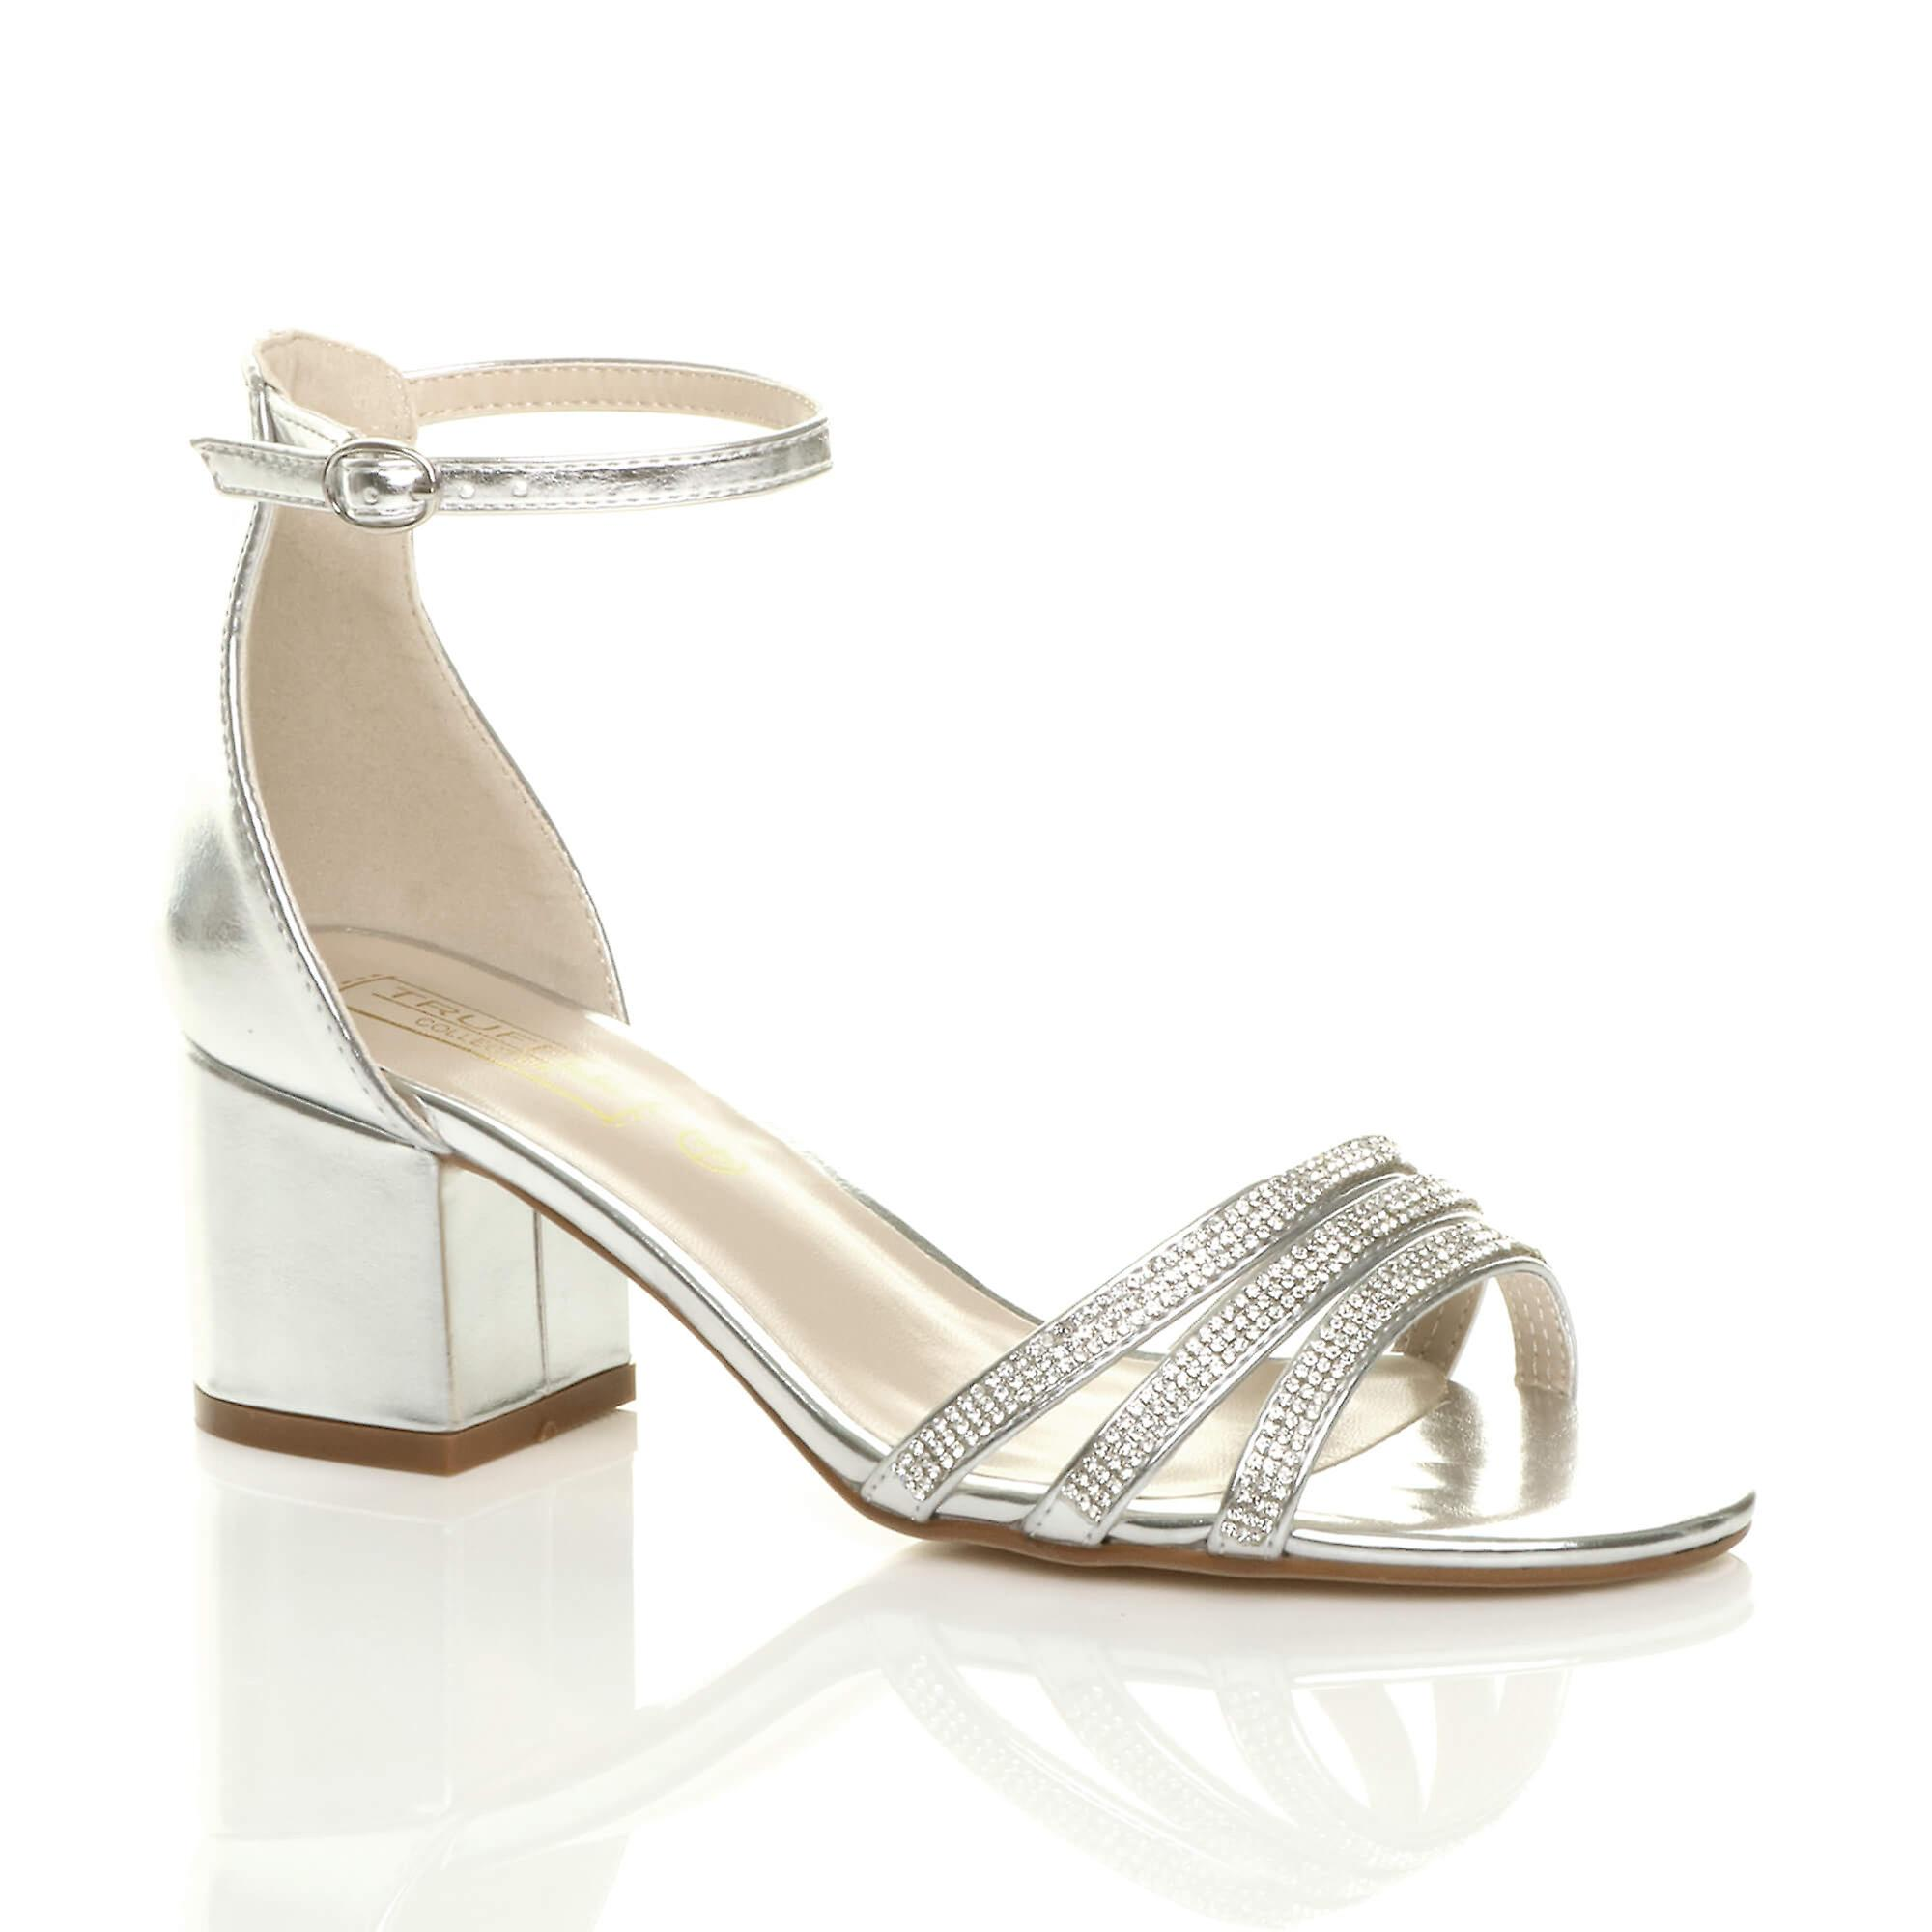 Ajvani womens low mid block heel strappy diamante party evening sandals shoes